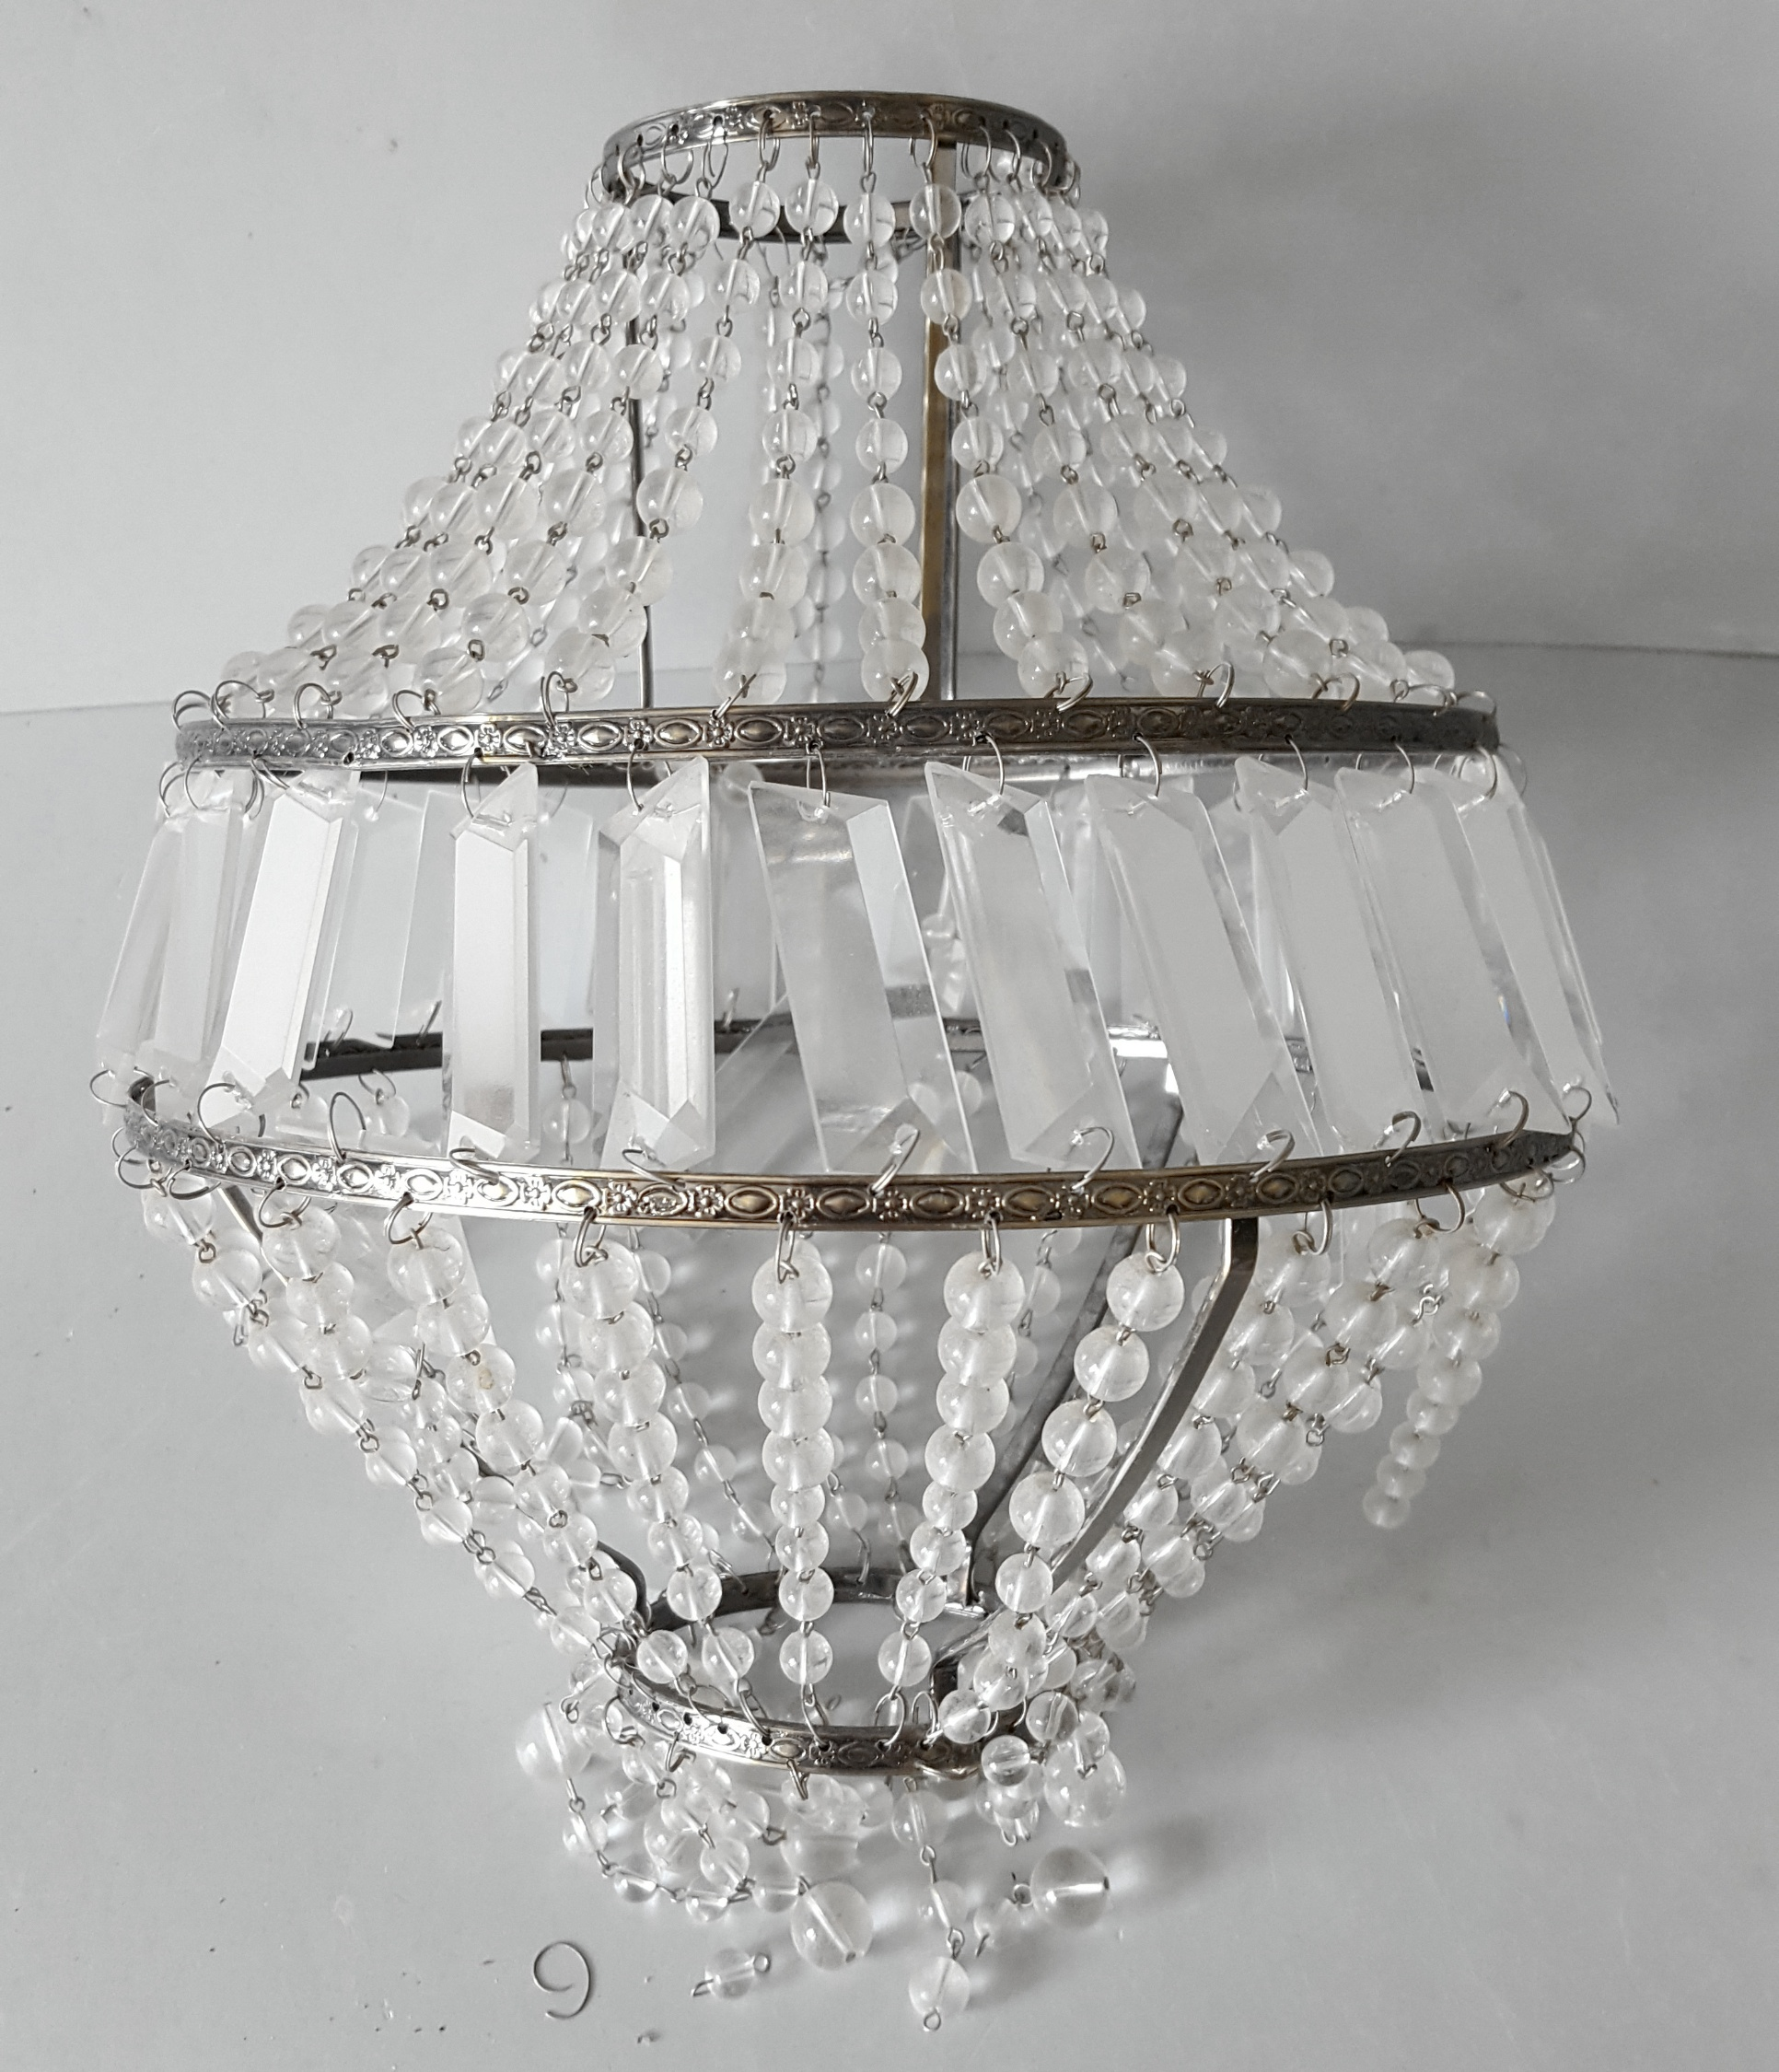 Lot 88 - Antique Vintage Retro Glass Chandelier